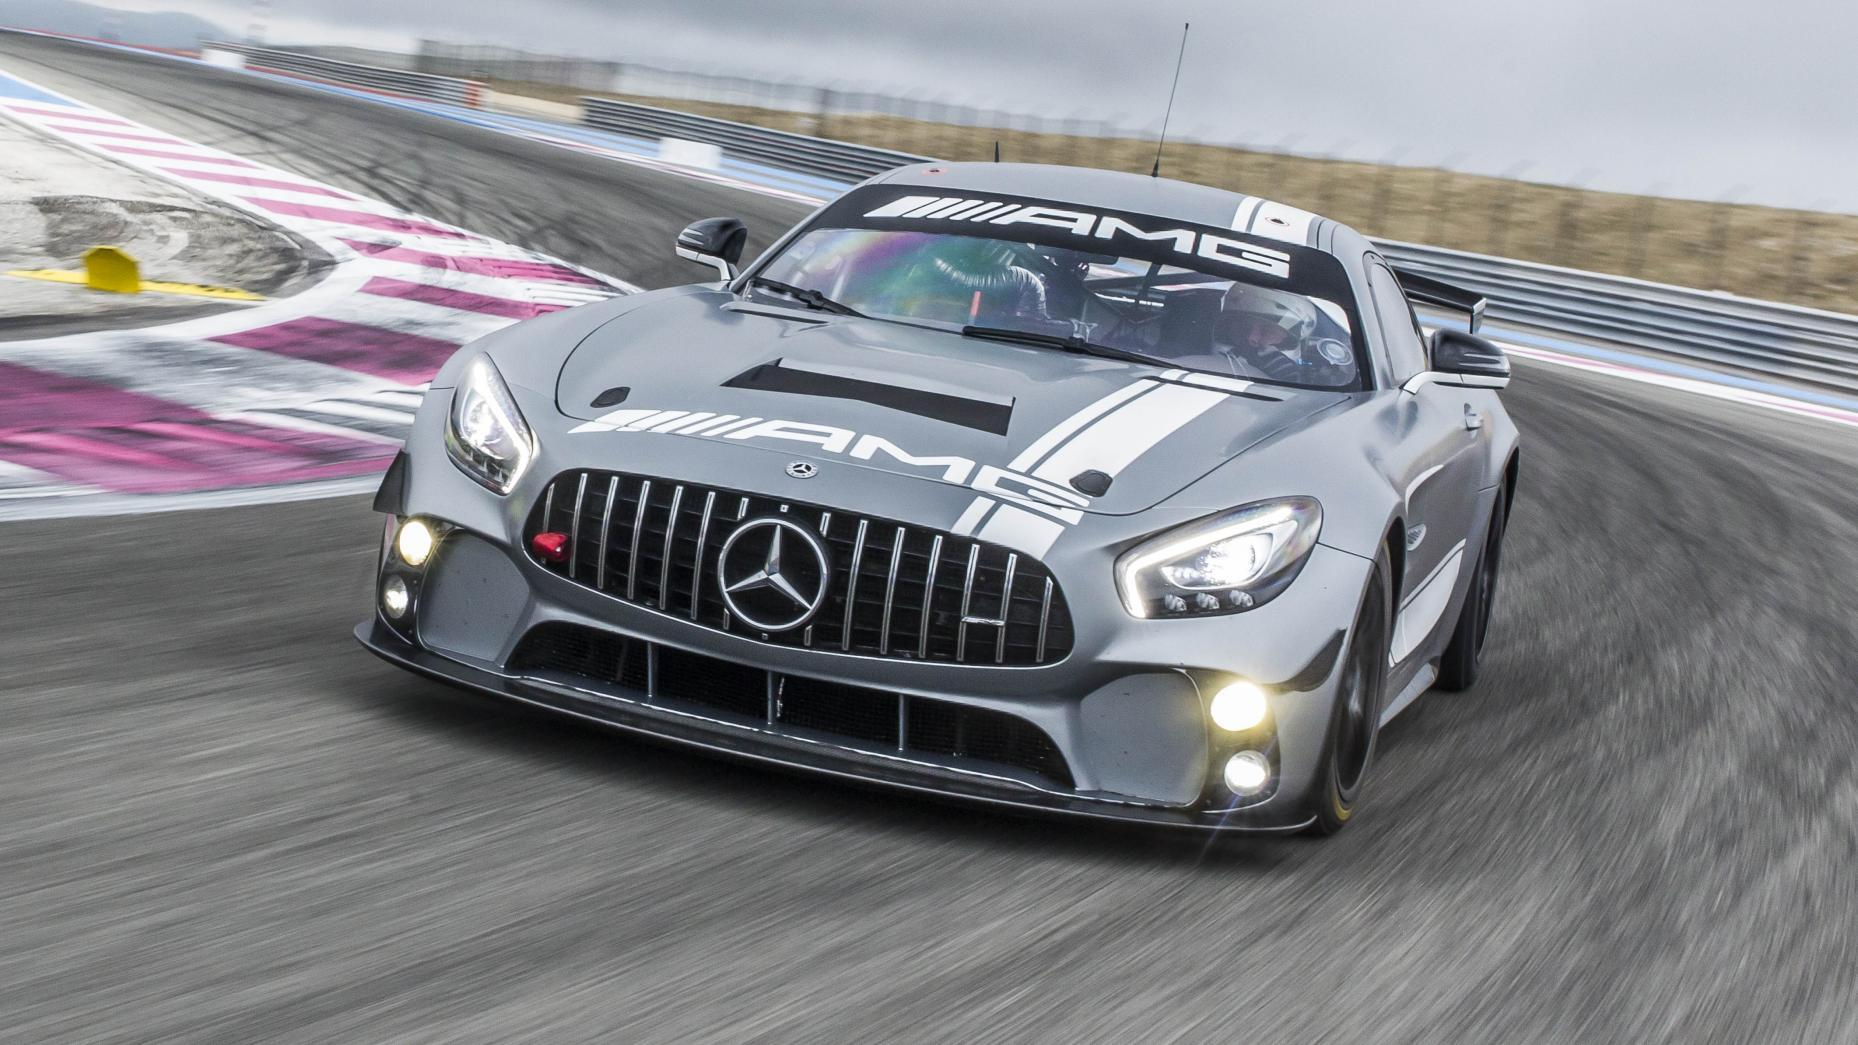 Mercedes-AMG GT4 racer: ten things you need to know